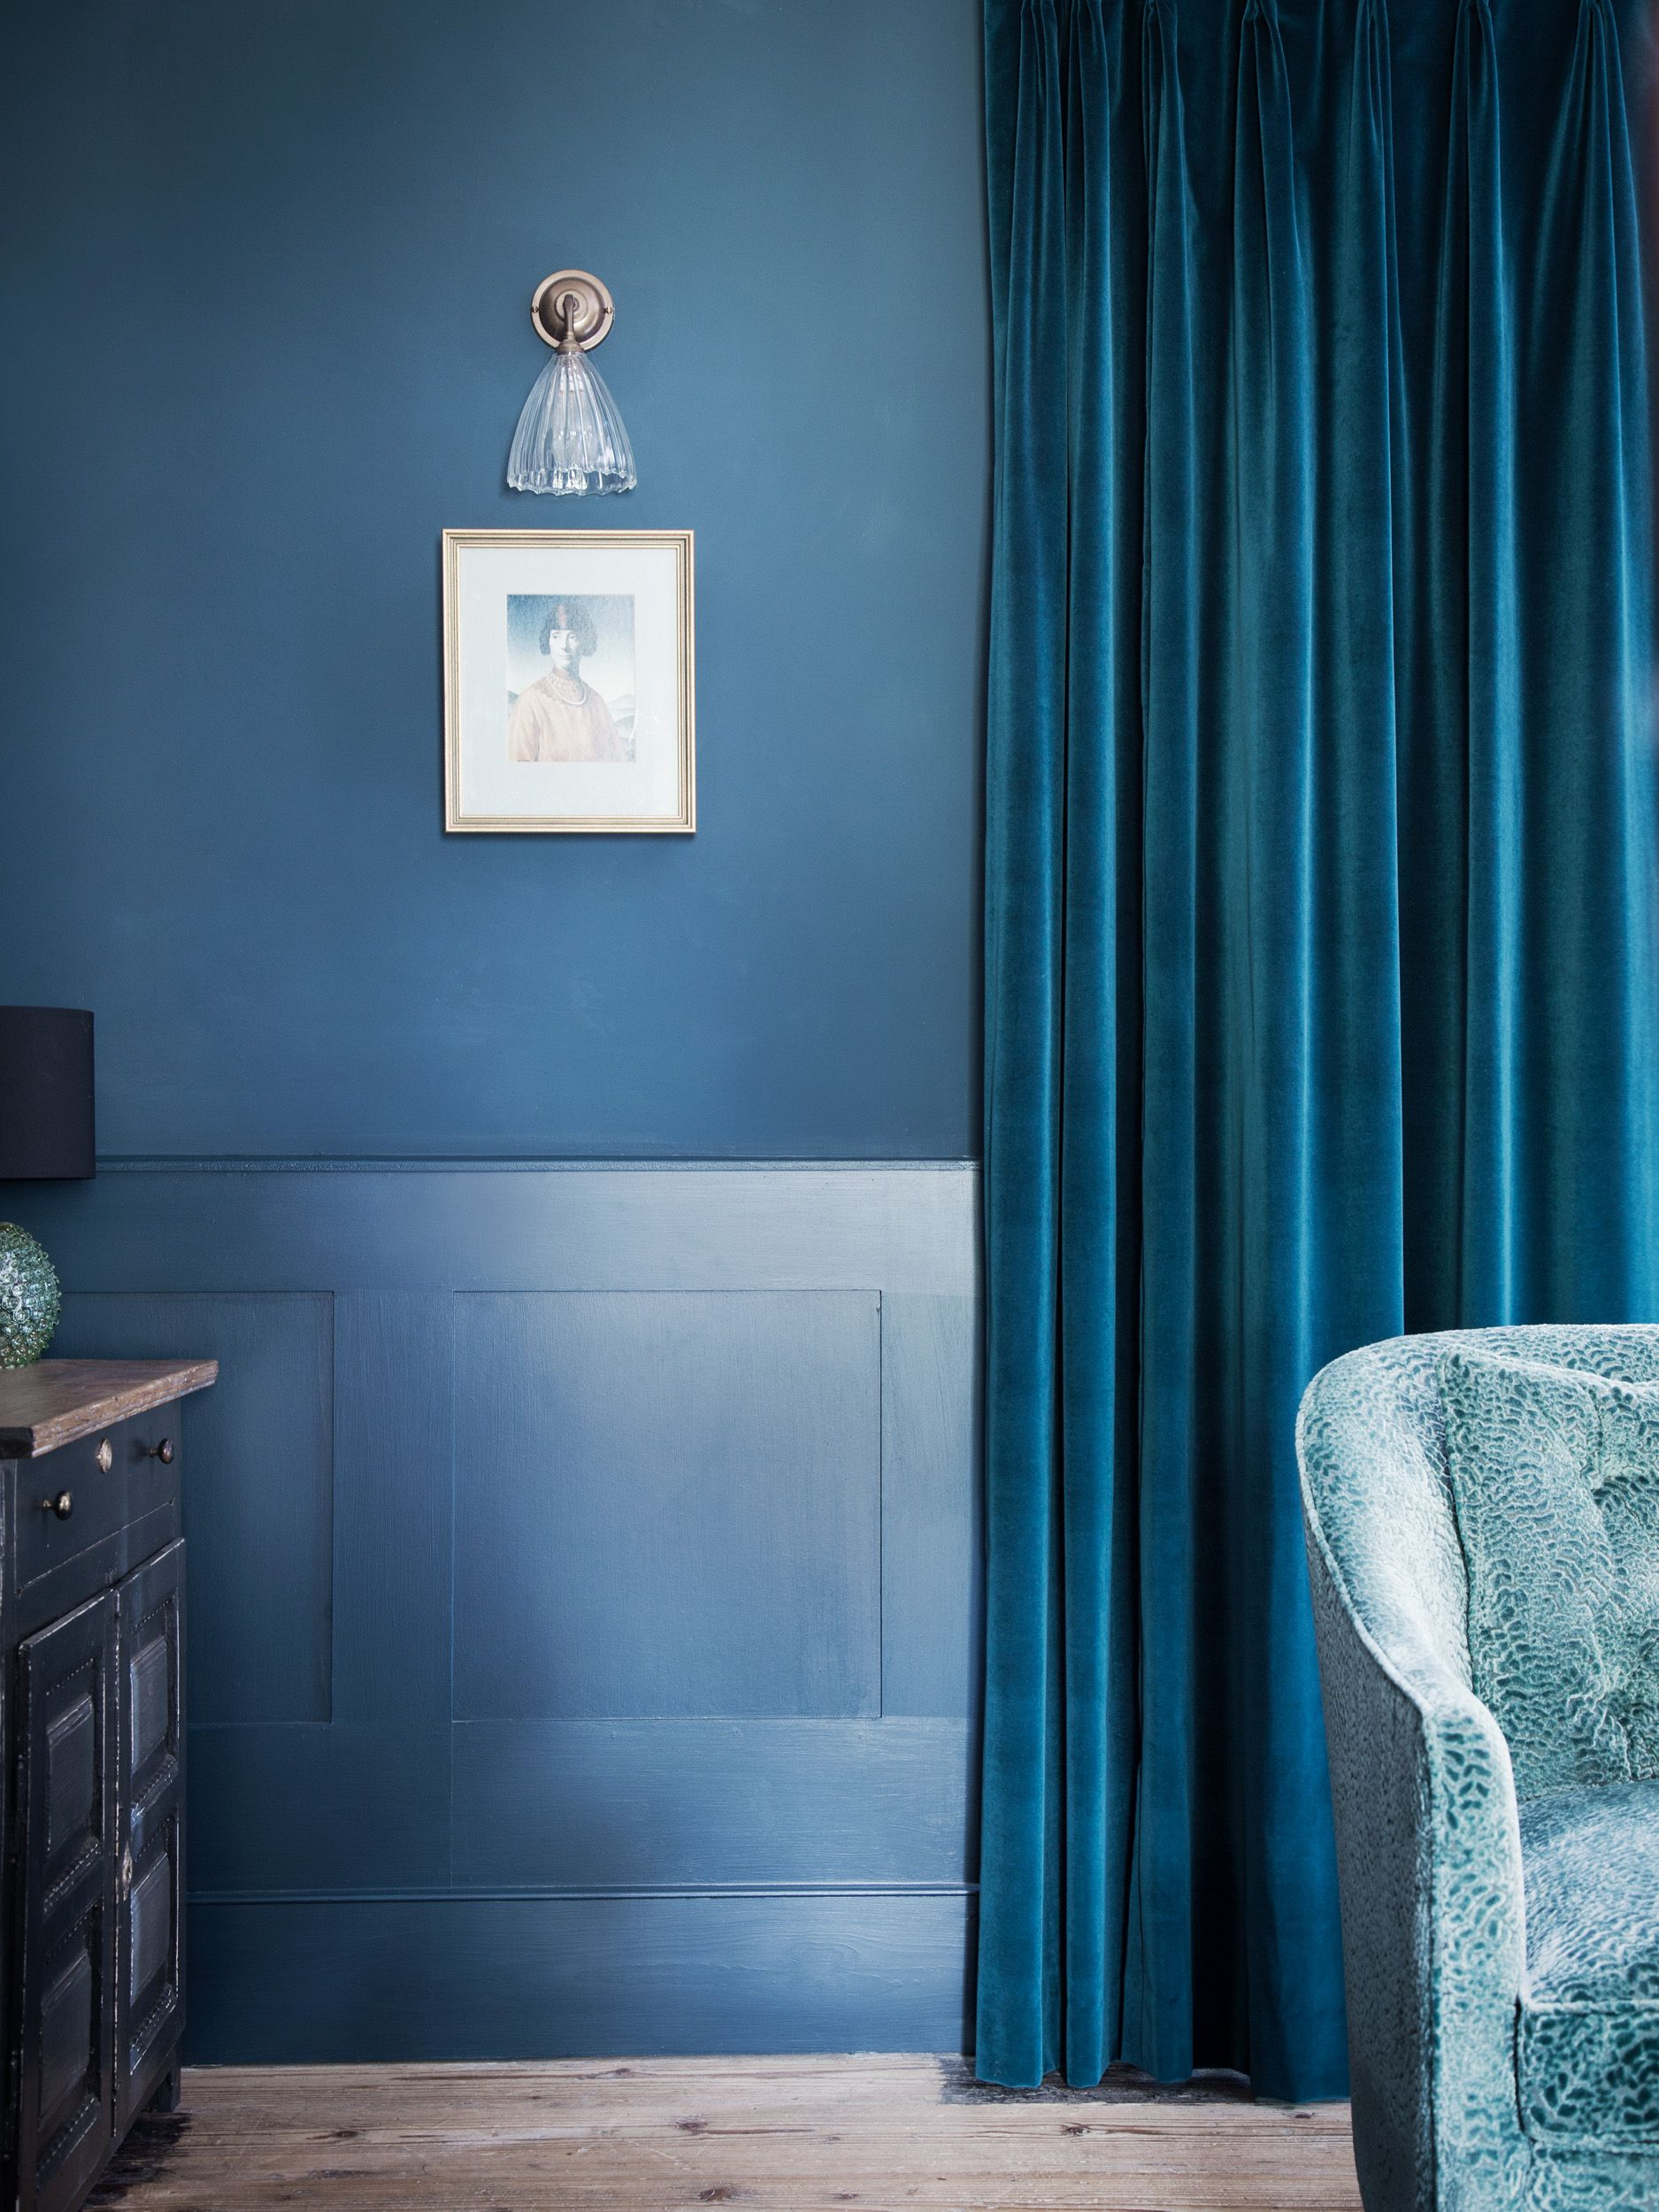 grommet teal pier curtain ankari imports in zoom curtains